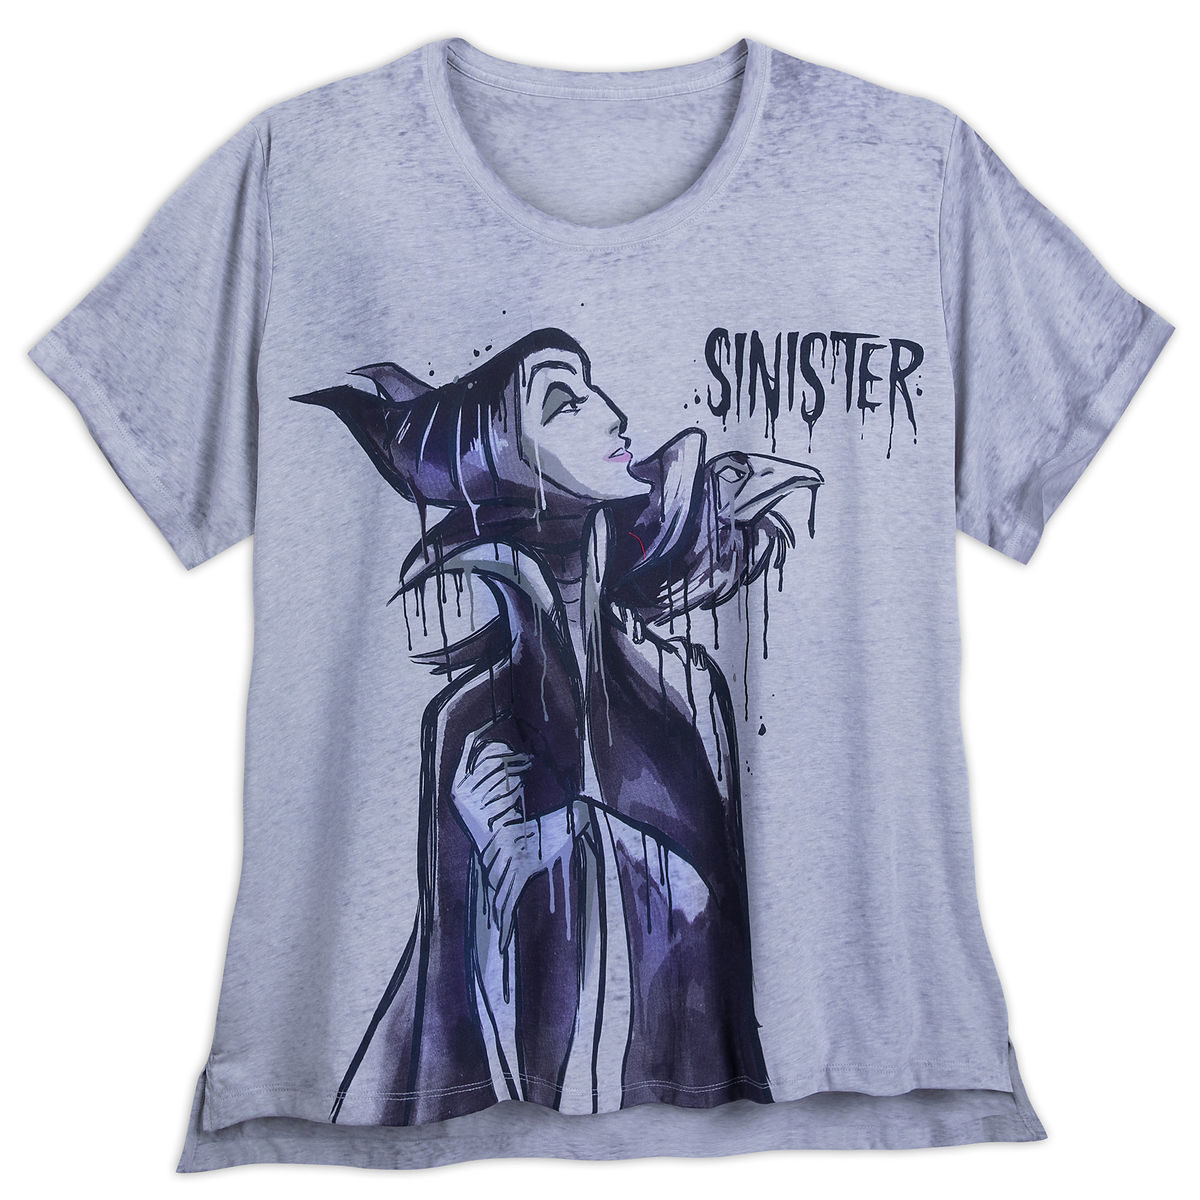 af2aad774a3 Product Image of Maleficent T-Shirt for Women - Sleeping Beauty - Extended  Size